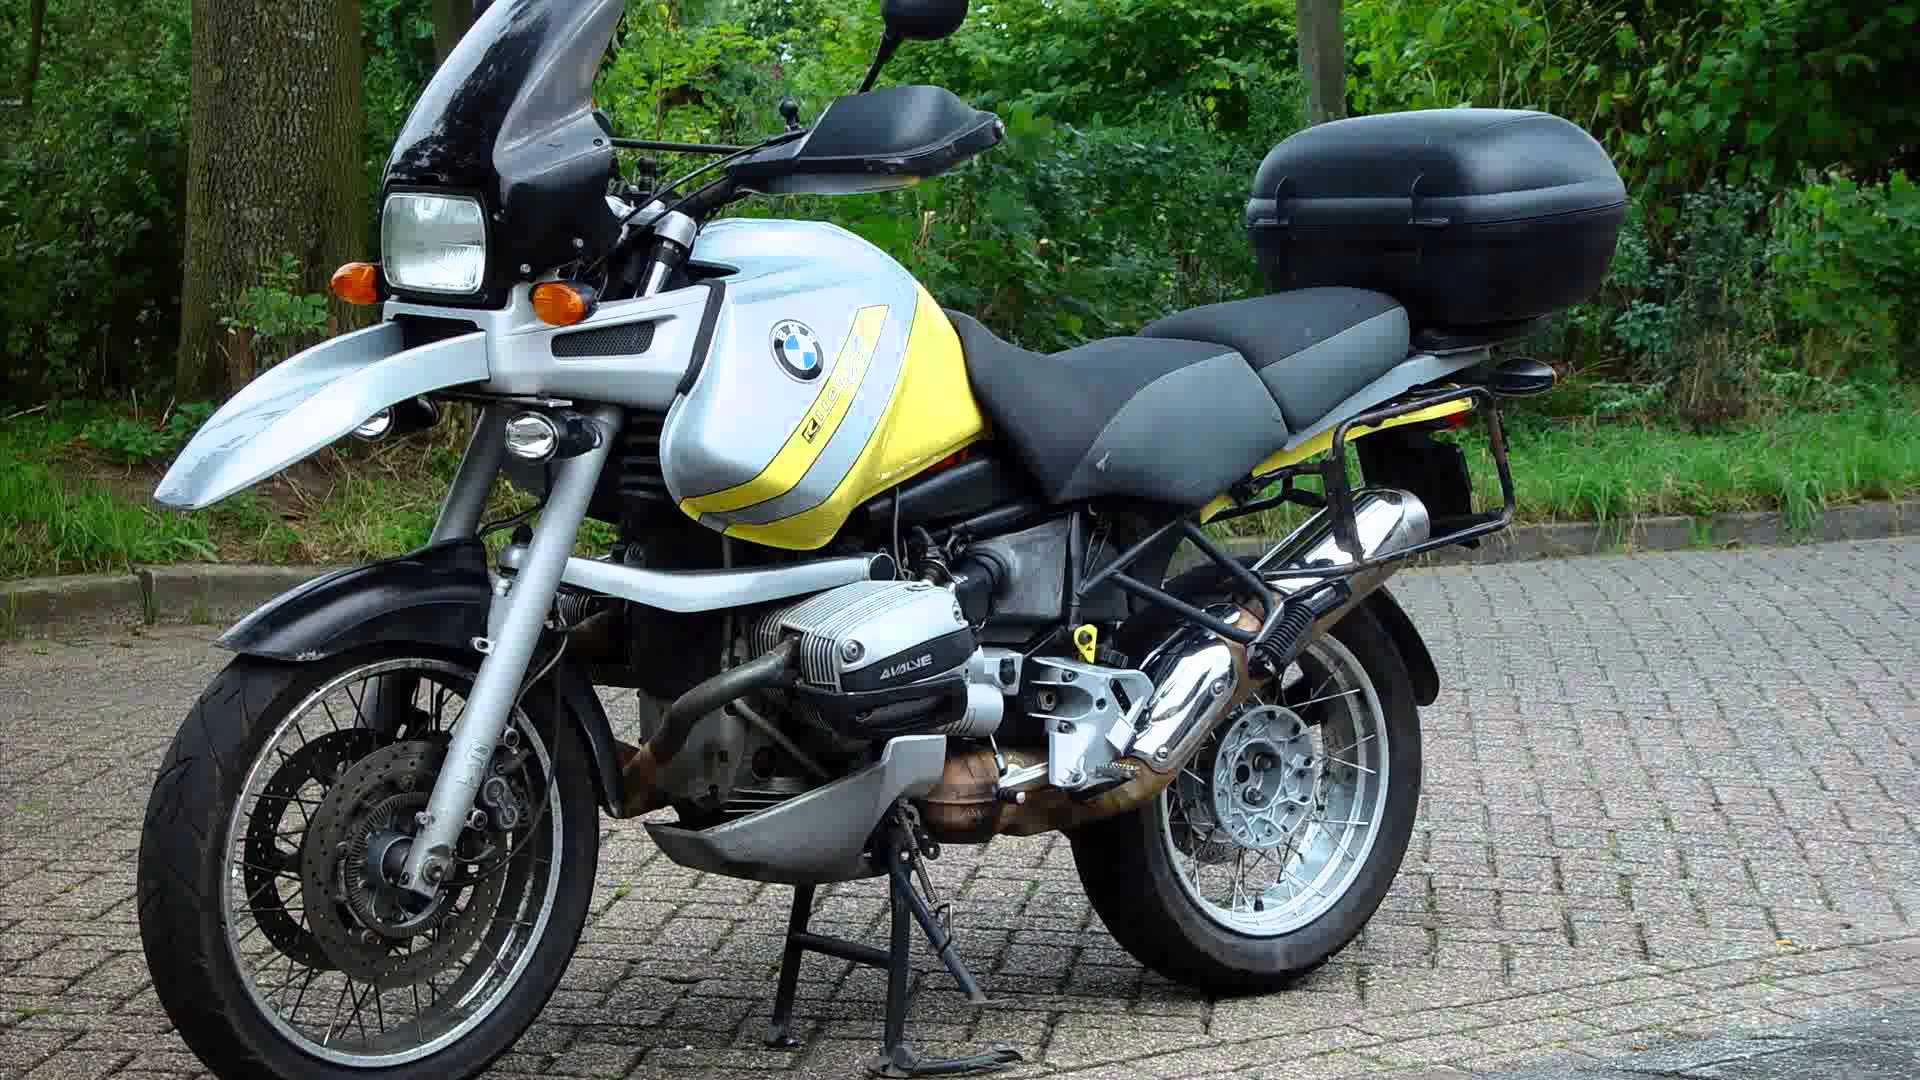 BMW R1100GS 1998 images #6330